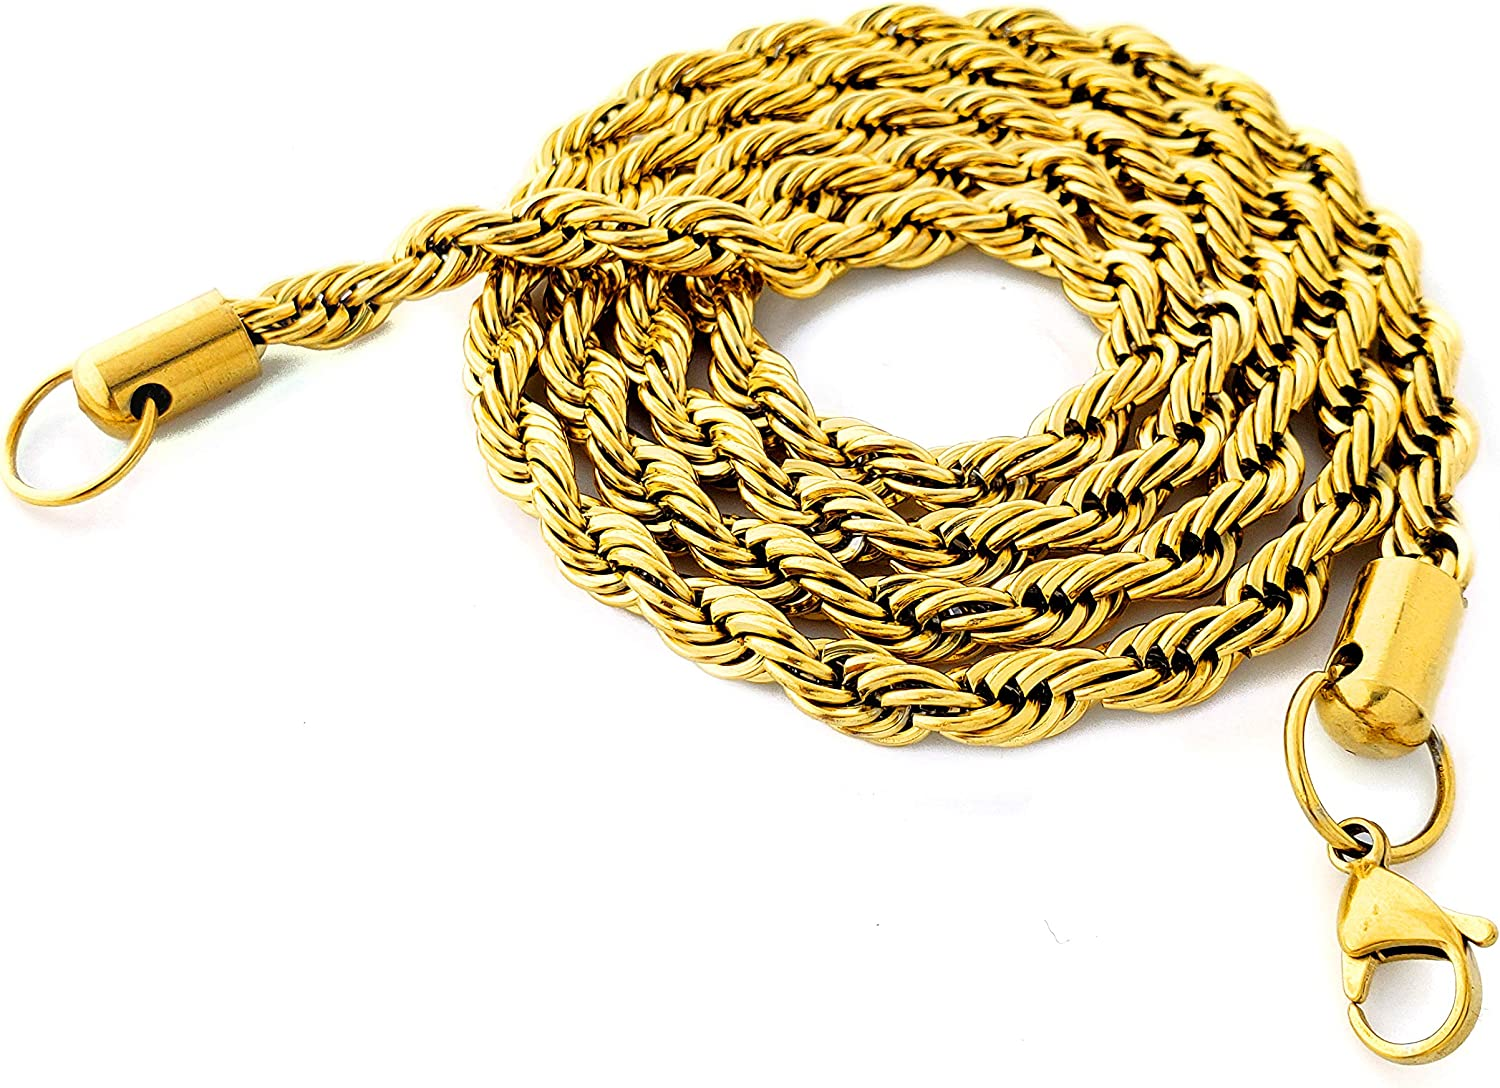 Alpha Glace 18k Gold Plated Stainless Steel Rope Chain (18